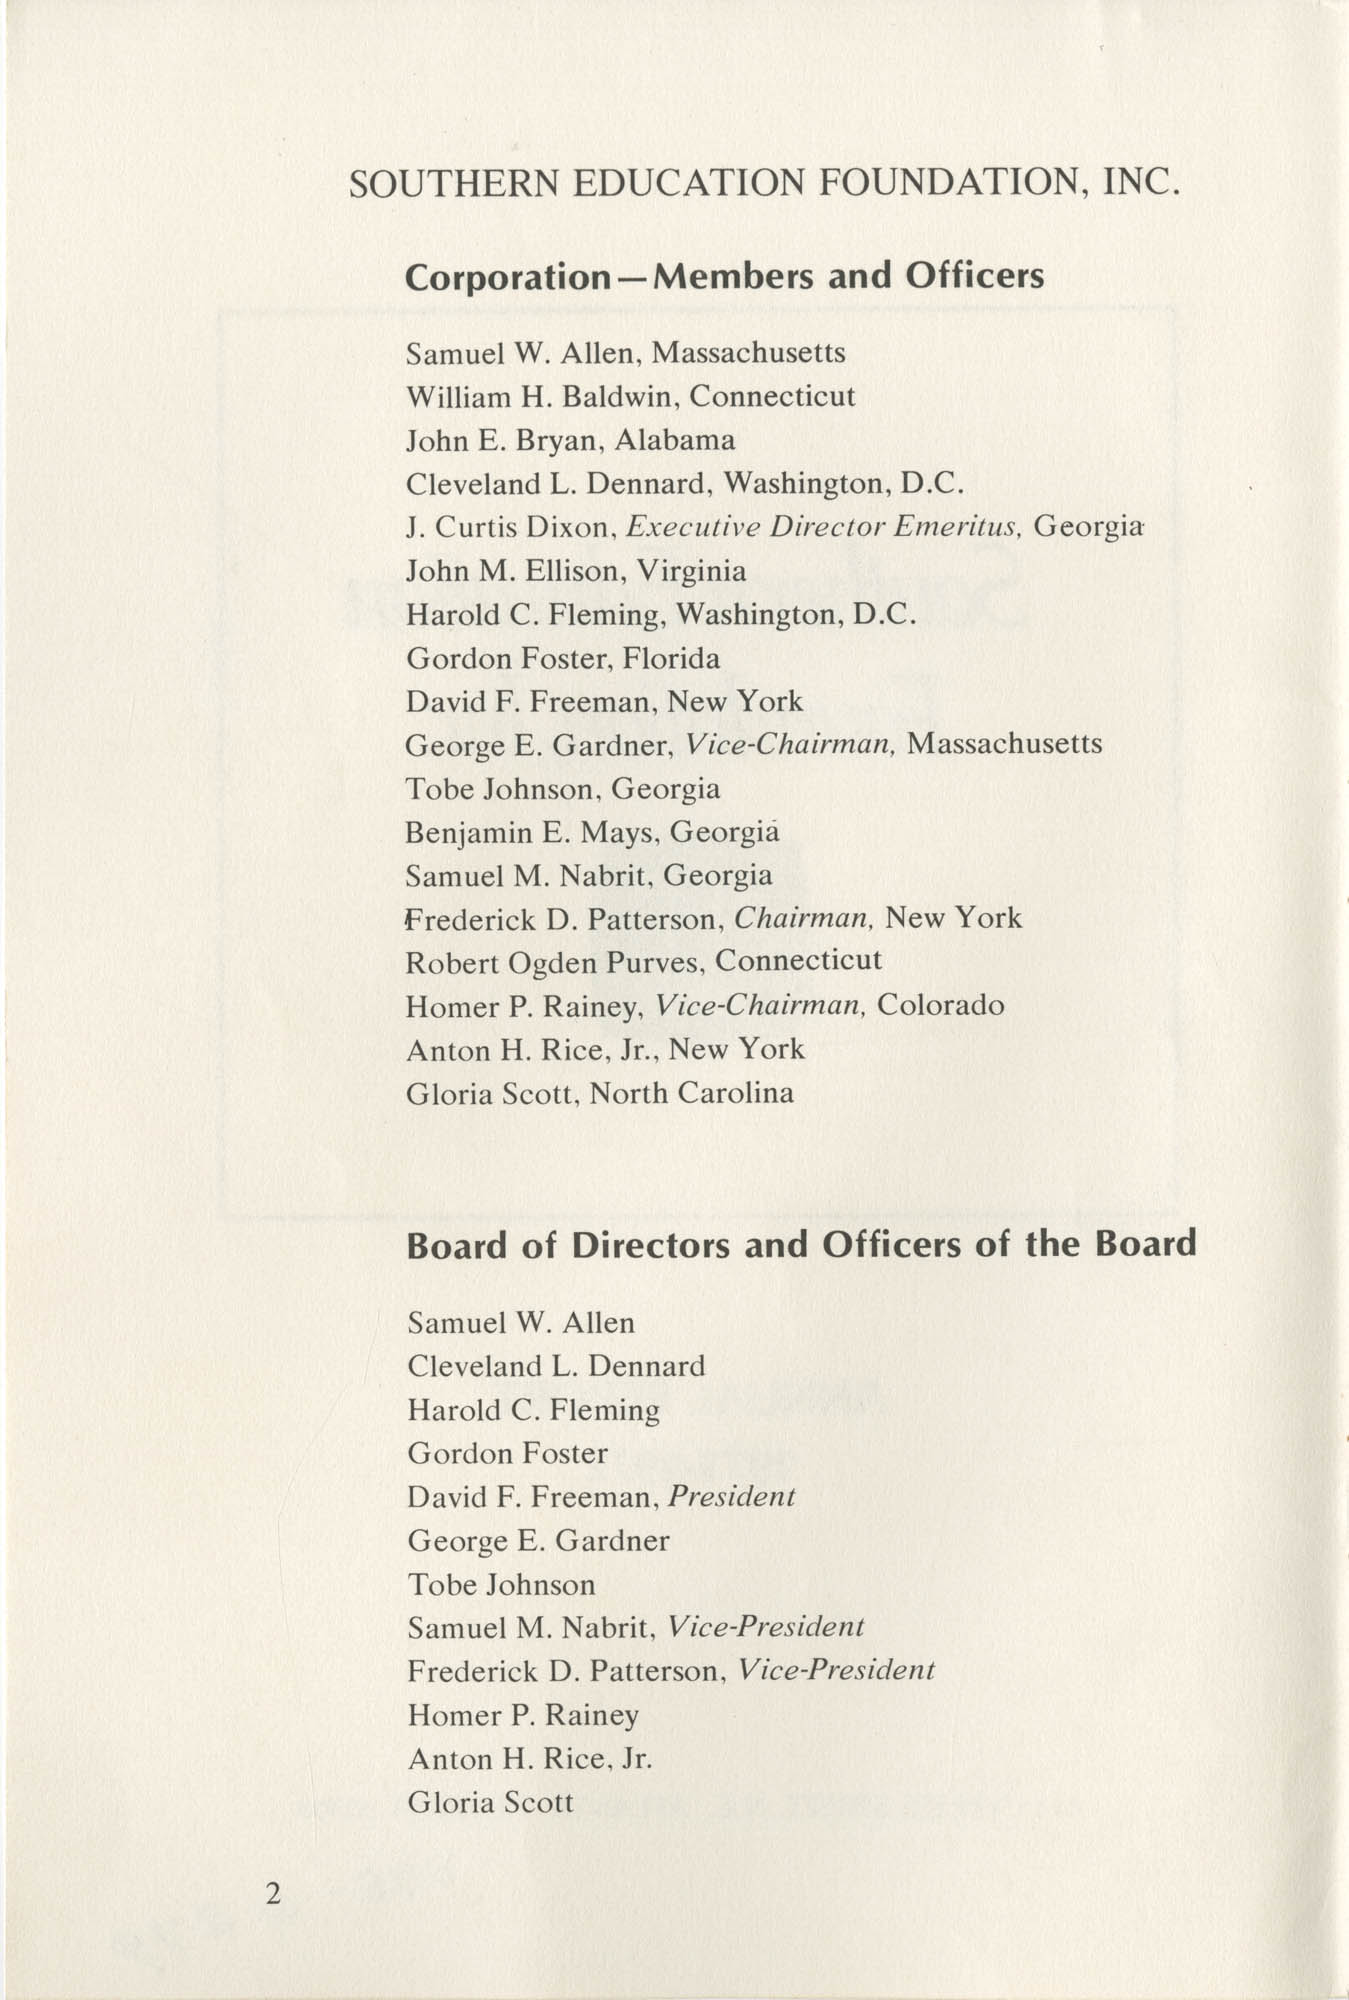 Southern Education Foundation, Annual Report 1971-1972, Page 2